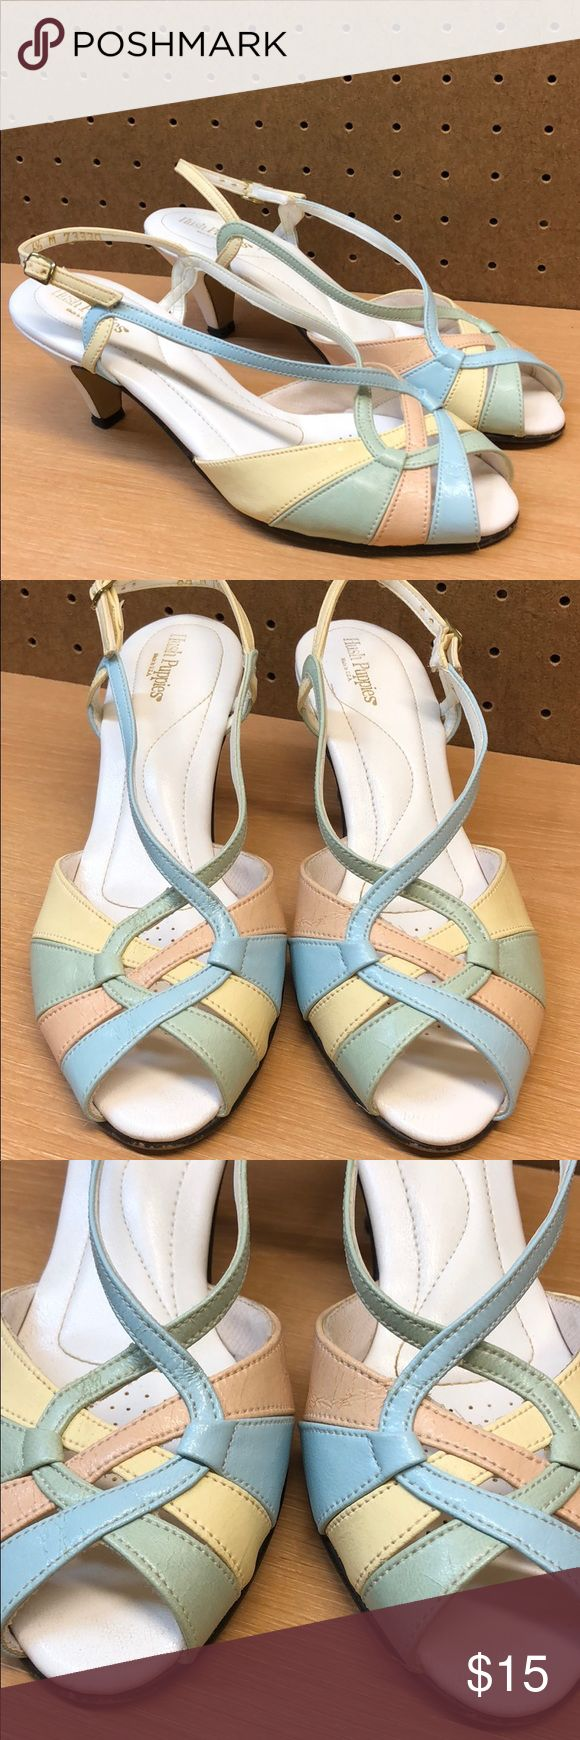 Hush Puppies Open Toe 2.5 in Heel/Sandals size 6.5 These look good even with a few minor signs of wear (see pics)   Open toes with strap in back.   Made of Leather   Colors: White, Yellow, Pink and Green   Approx. 2.5 in Heel Hush Puppies Shoes Heels